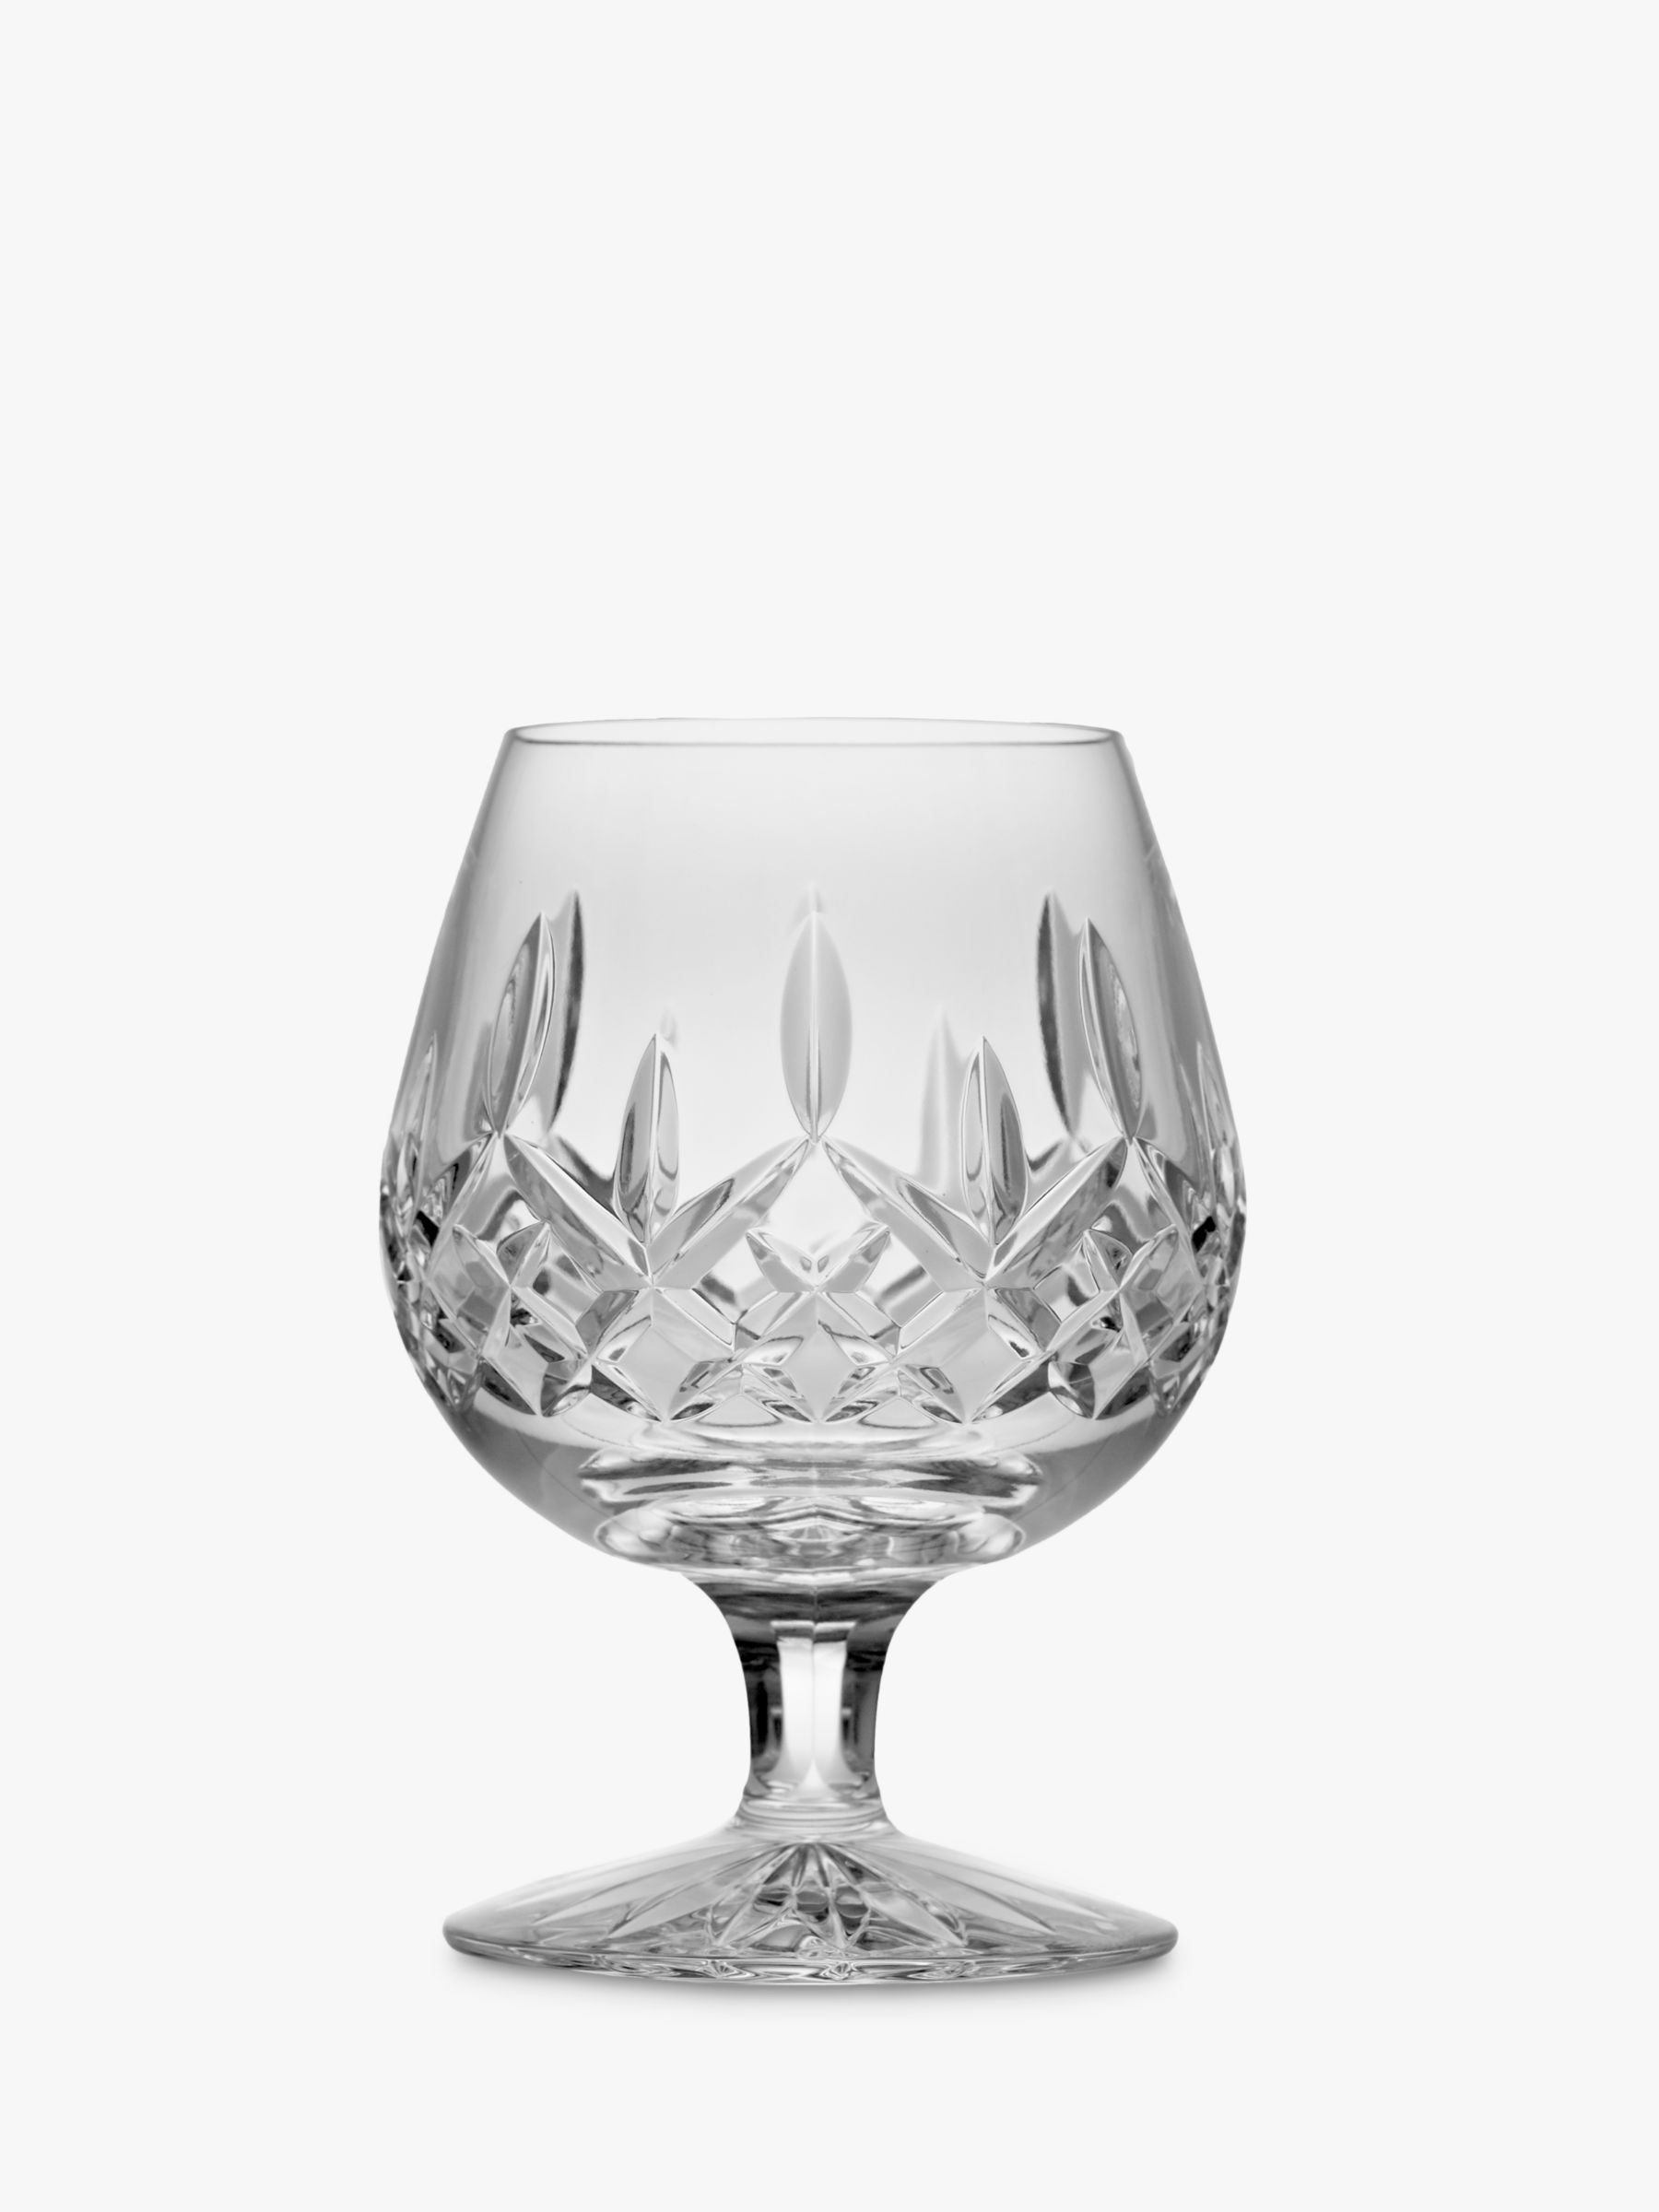 Waterford Waterford Cut Lead Crystal Lismore Brandy Glass, 300ml, Clear